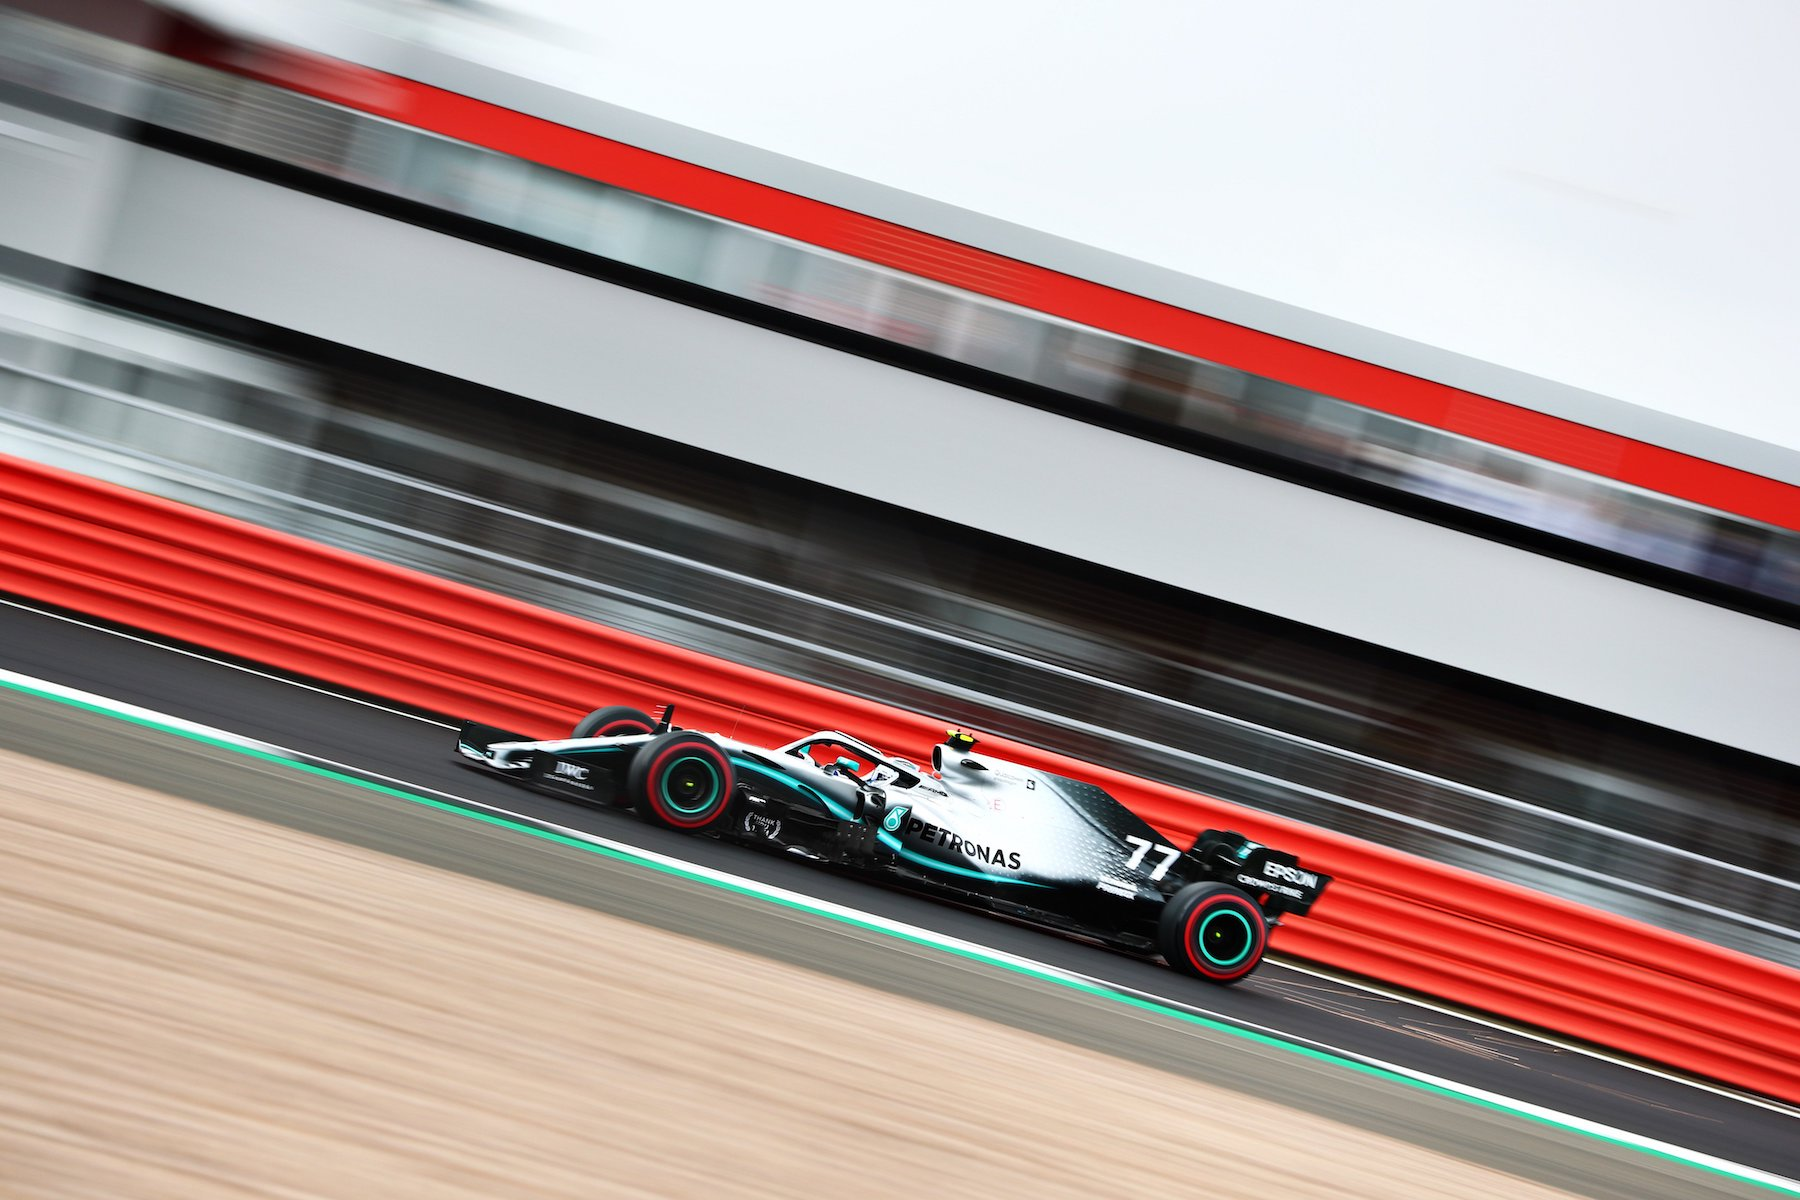 3 2019 British Grand Prix Saturday 43.jpg